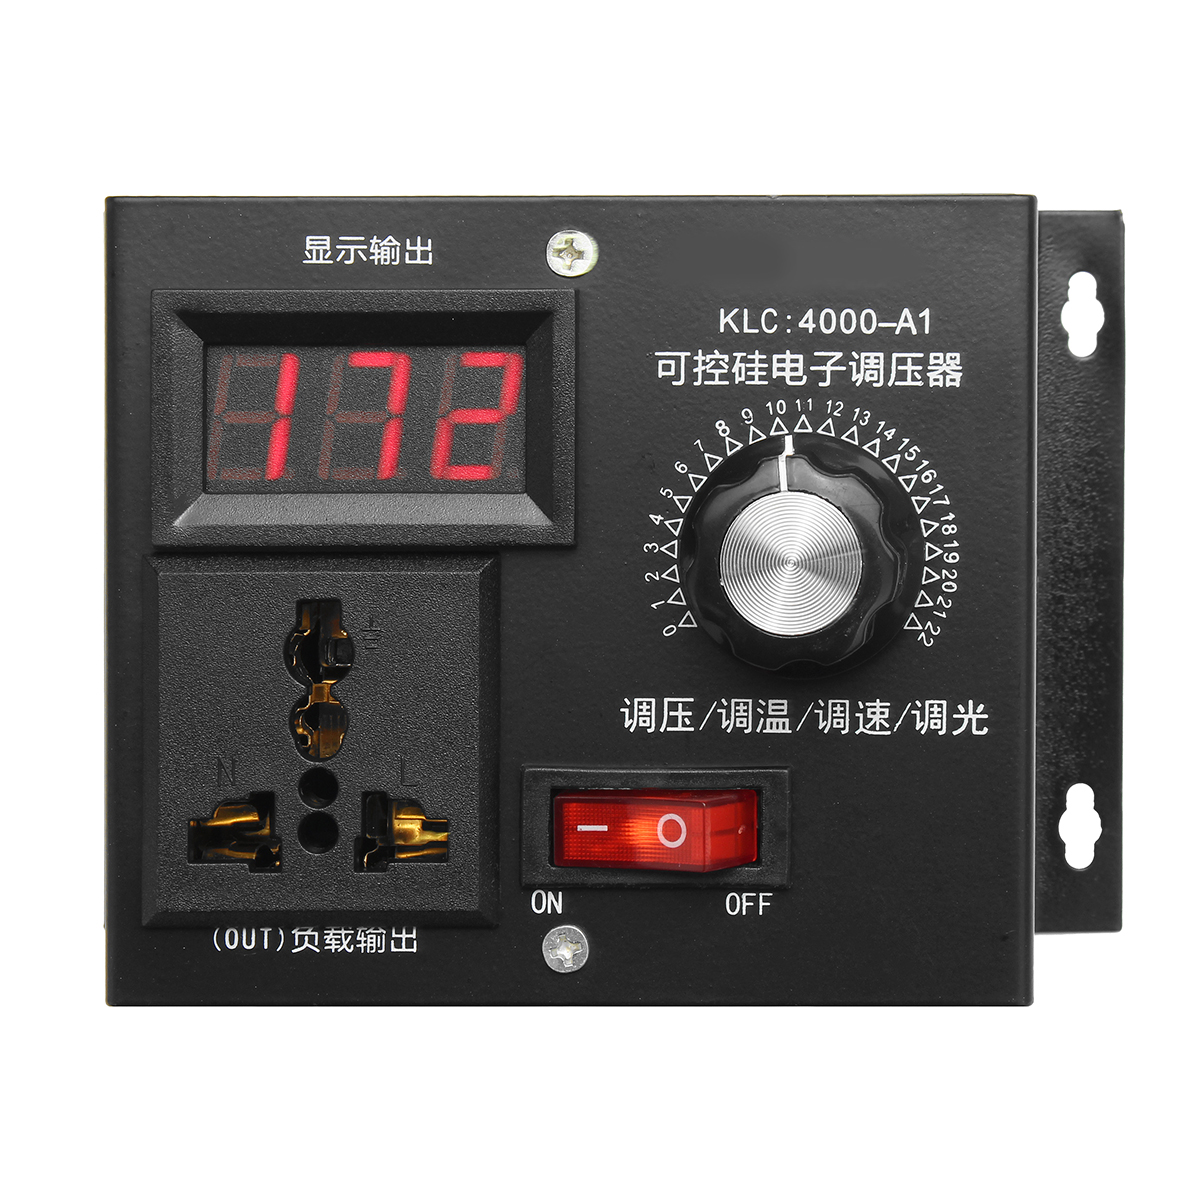 220V 4000W Universal Motor Speed Controller Variable Voltage Speed Regulator LED Display Motor Control Dimmer